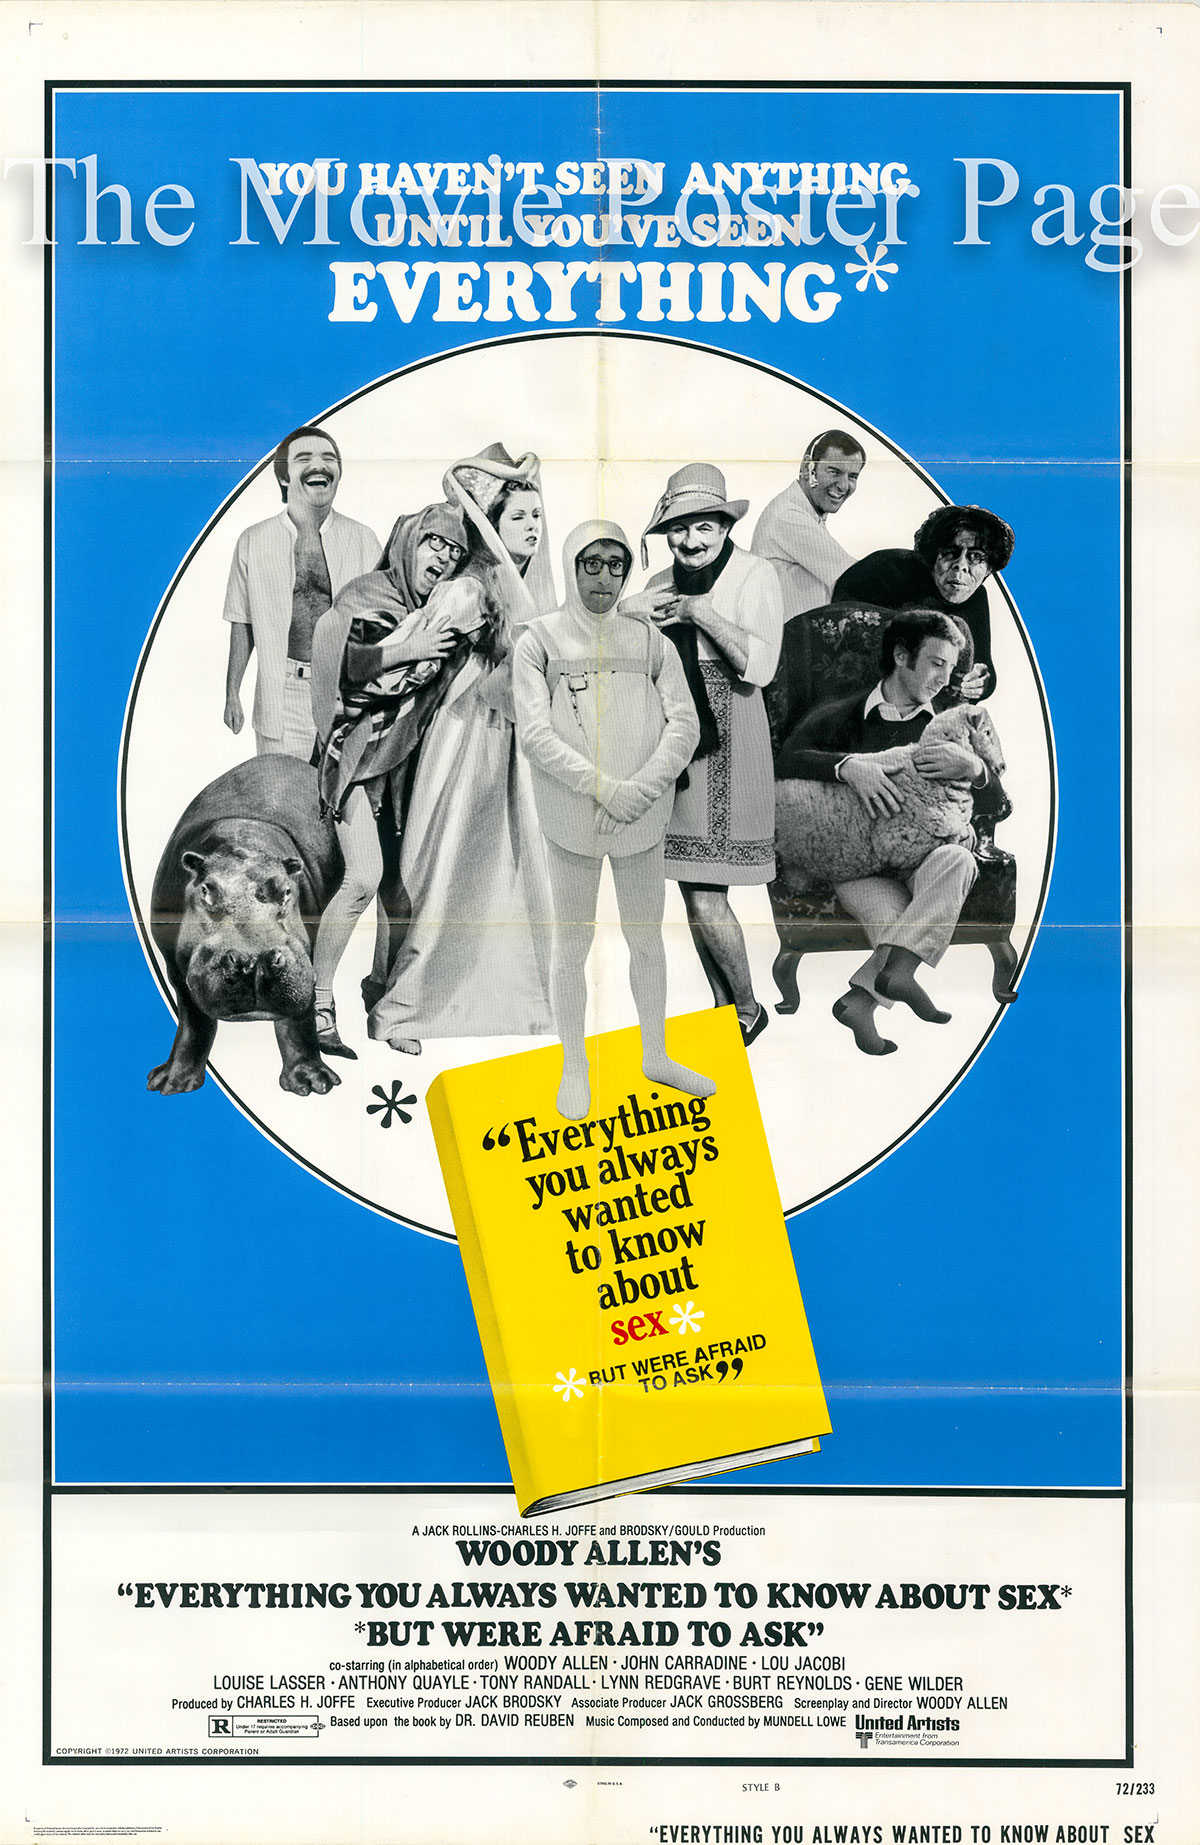 Pictured is a US one-sheet poster for the 1972 Woody Allen film Everything You Always Wanted to Know about Sex starring Woody Allen.